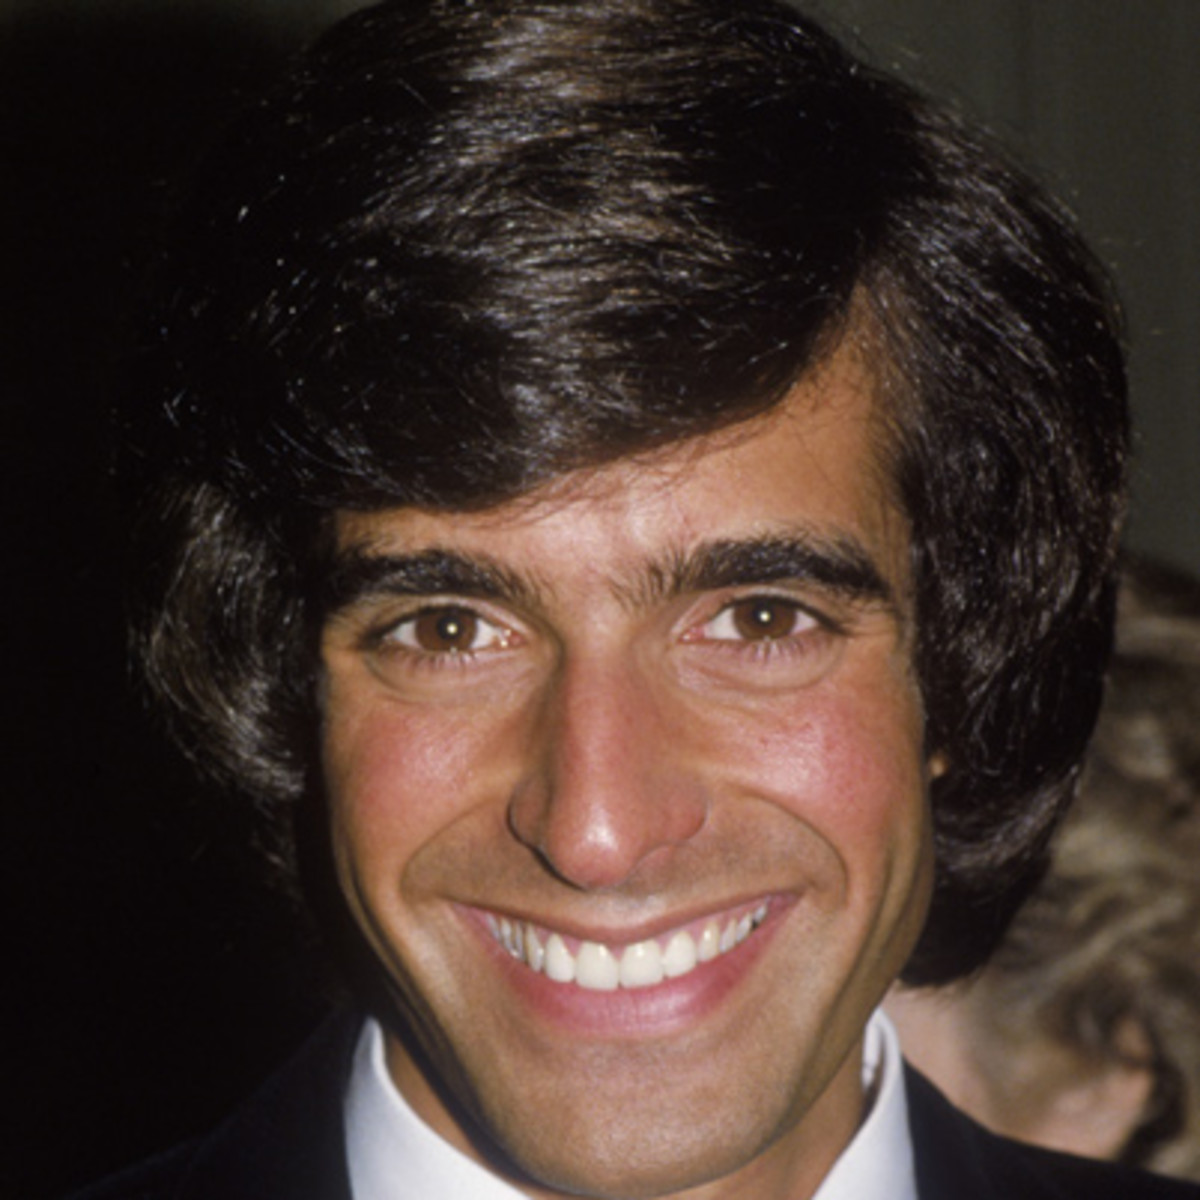 david copperfield magician philanthropist television david copperfield magician philanthropist television personality biography com